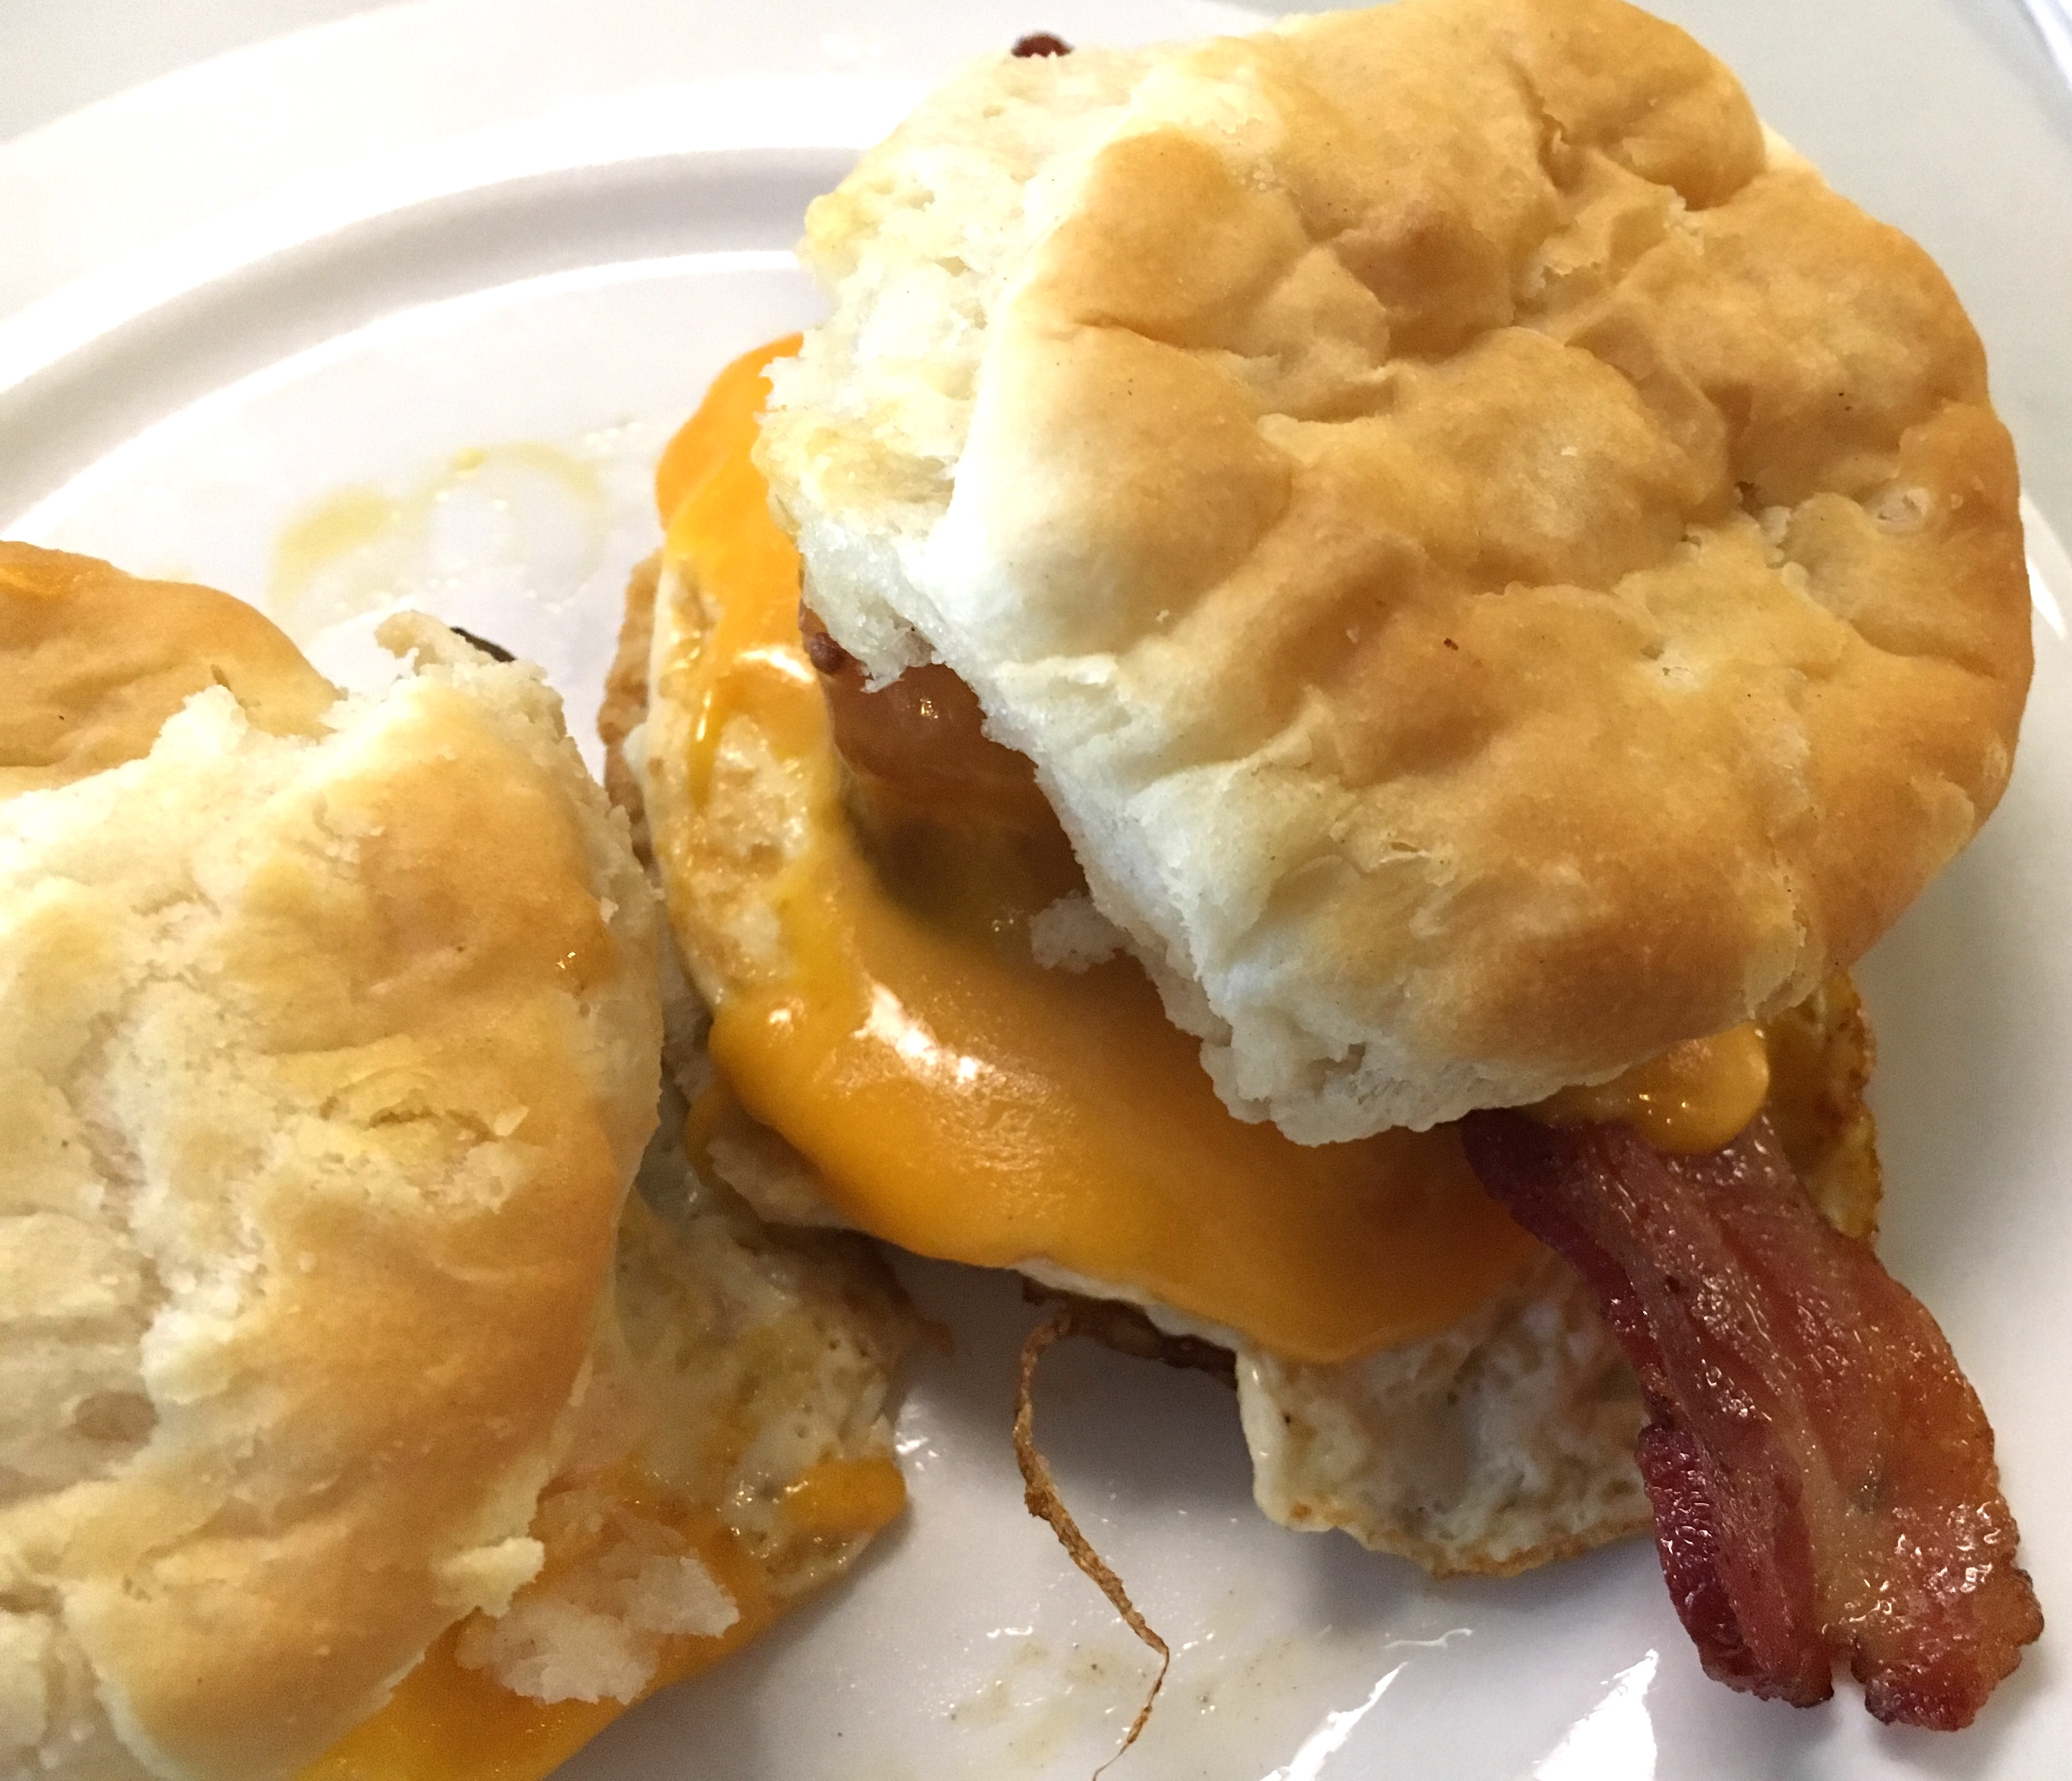 Egg and cheese biscuit at The Fox Restaurant, Jacksonville, FL